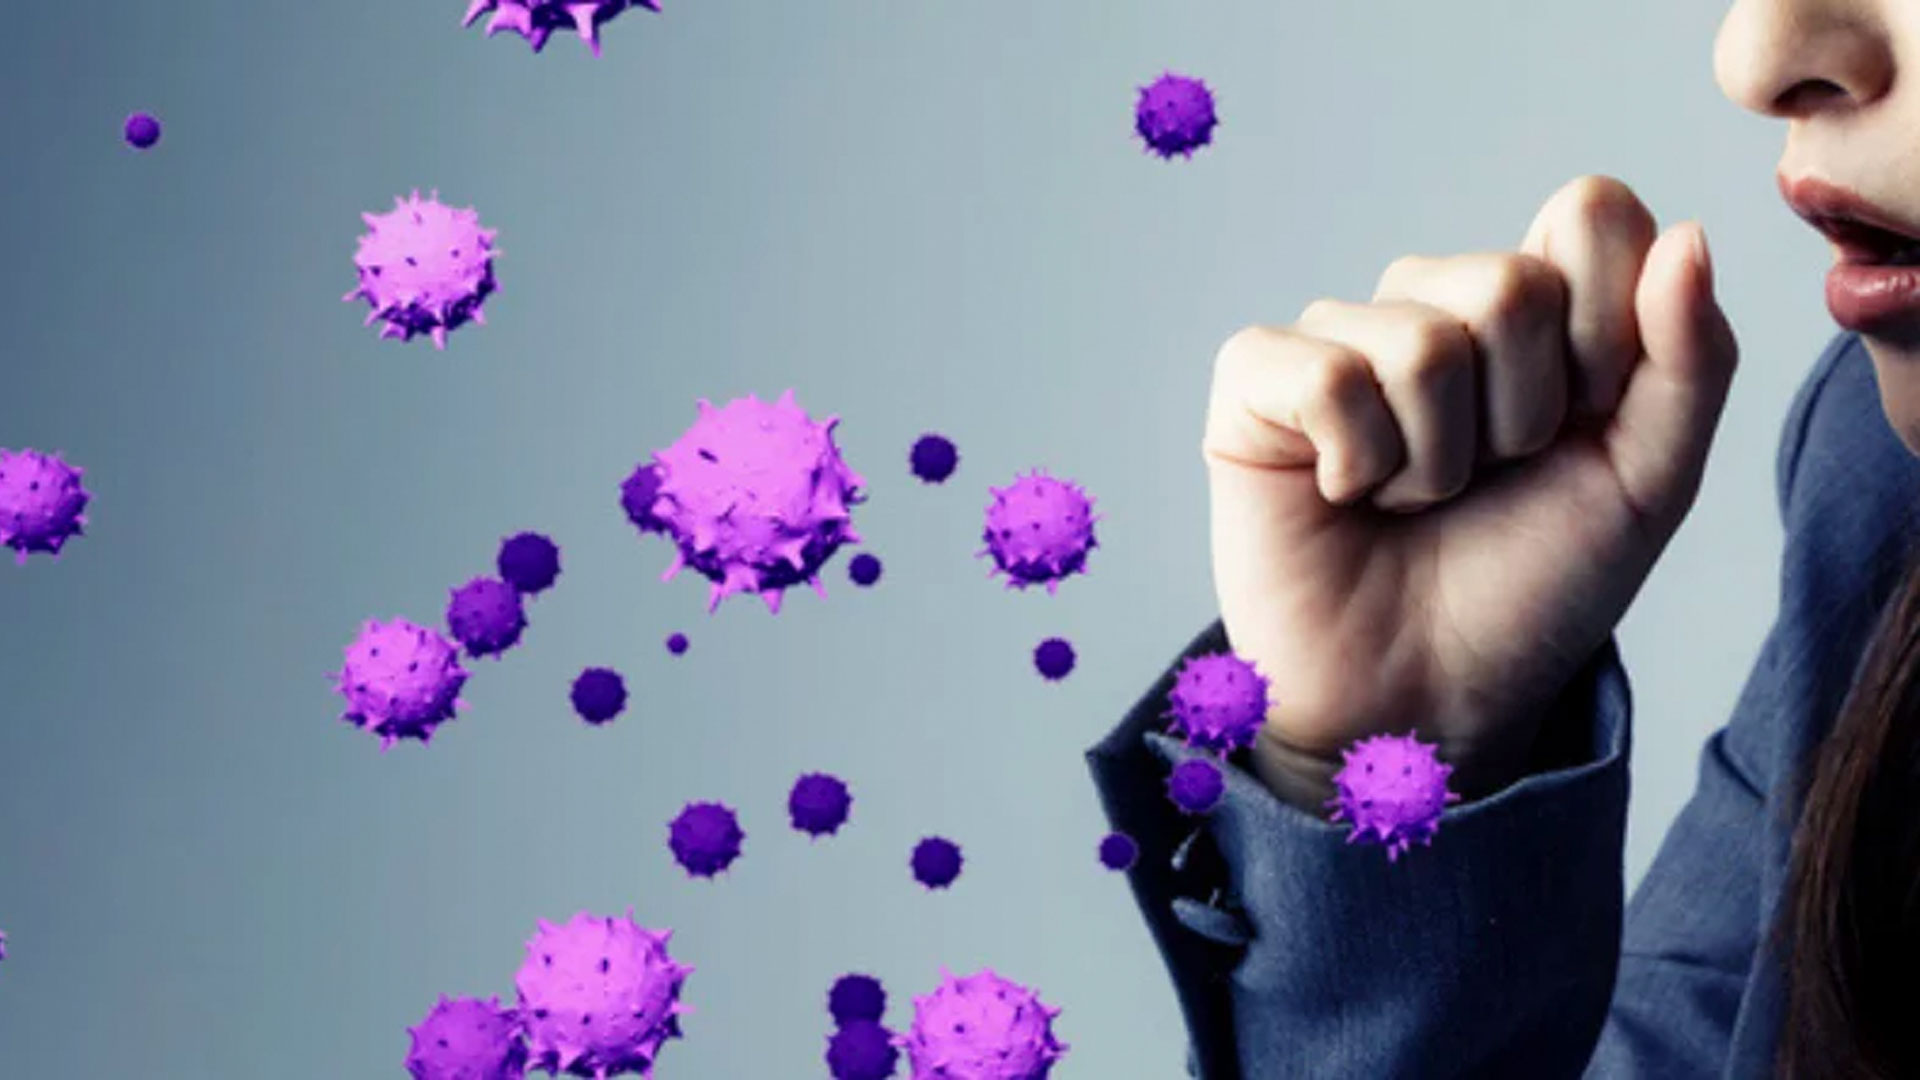 Person coughing with purple virus molecules floating around.